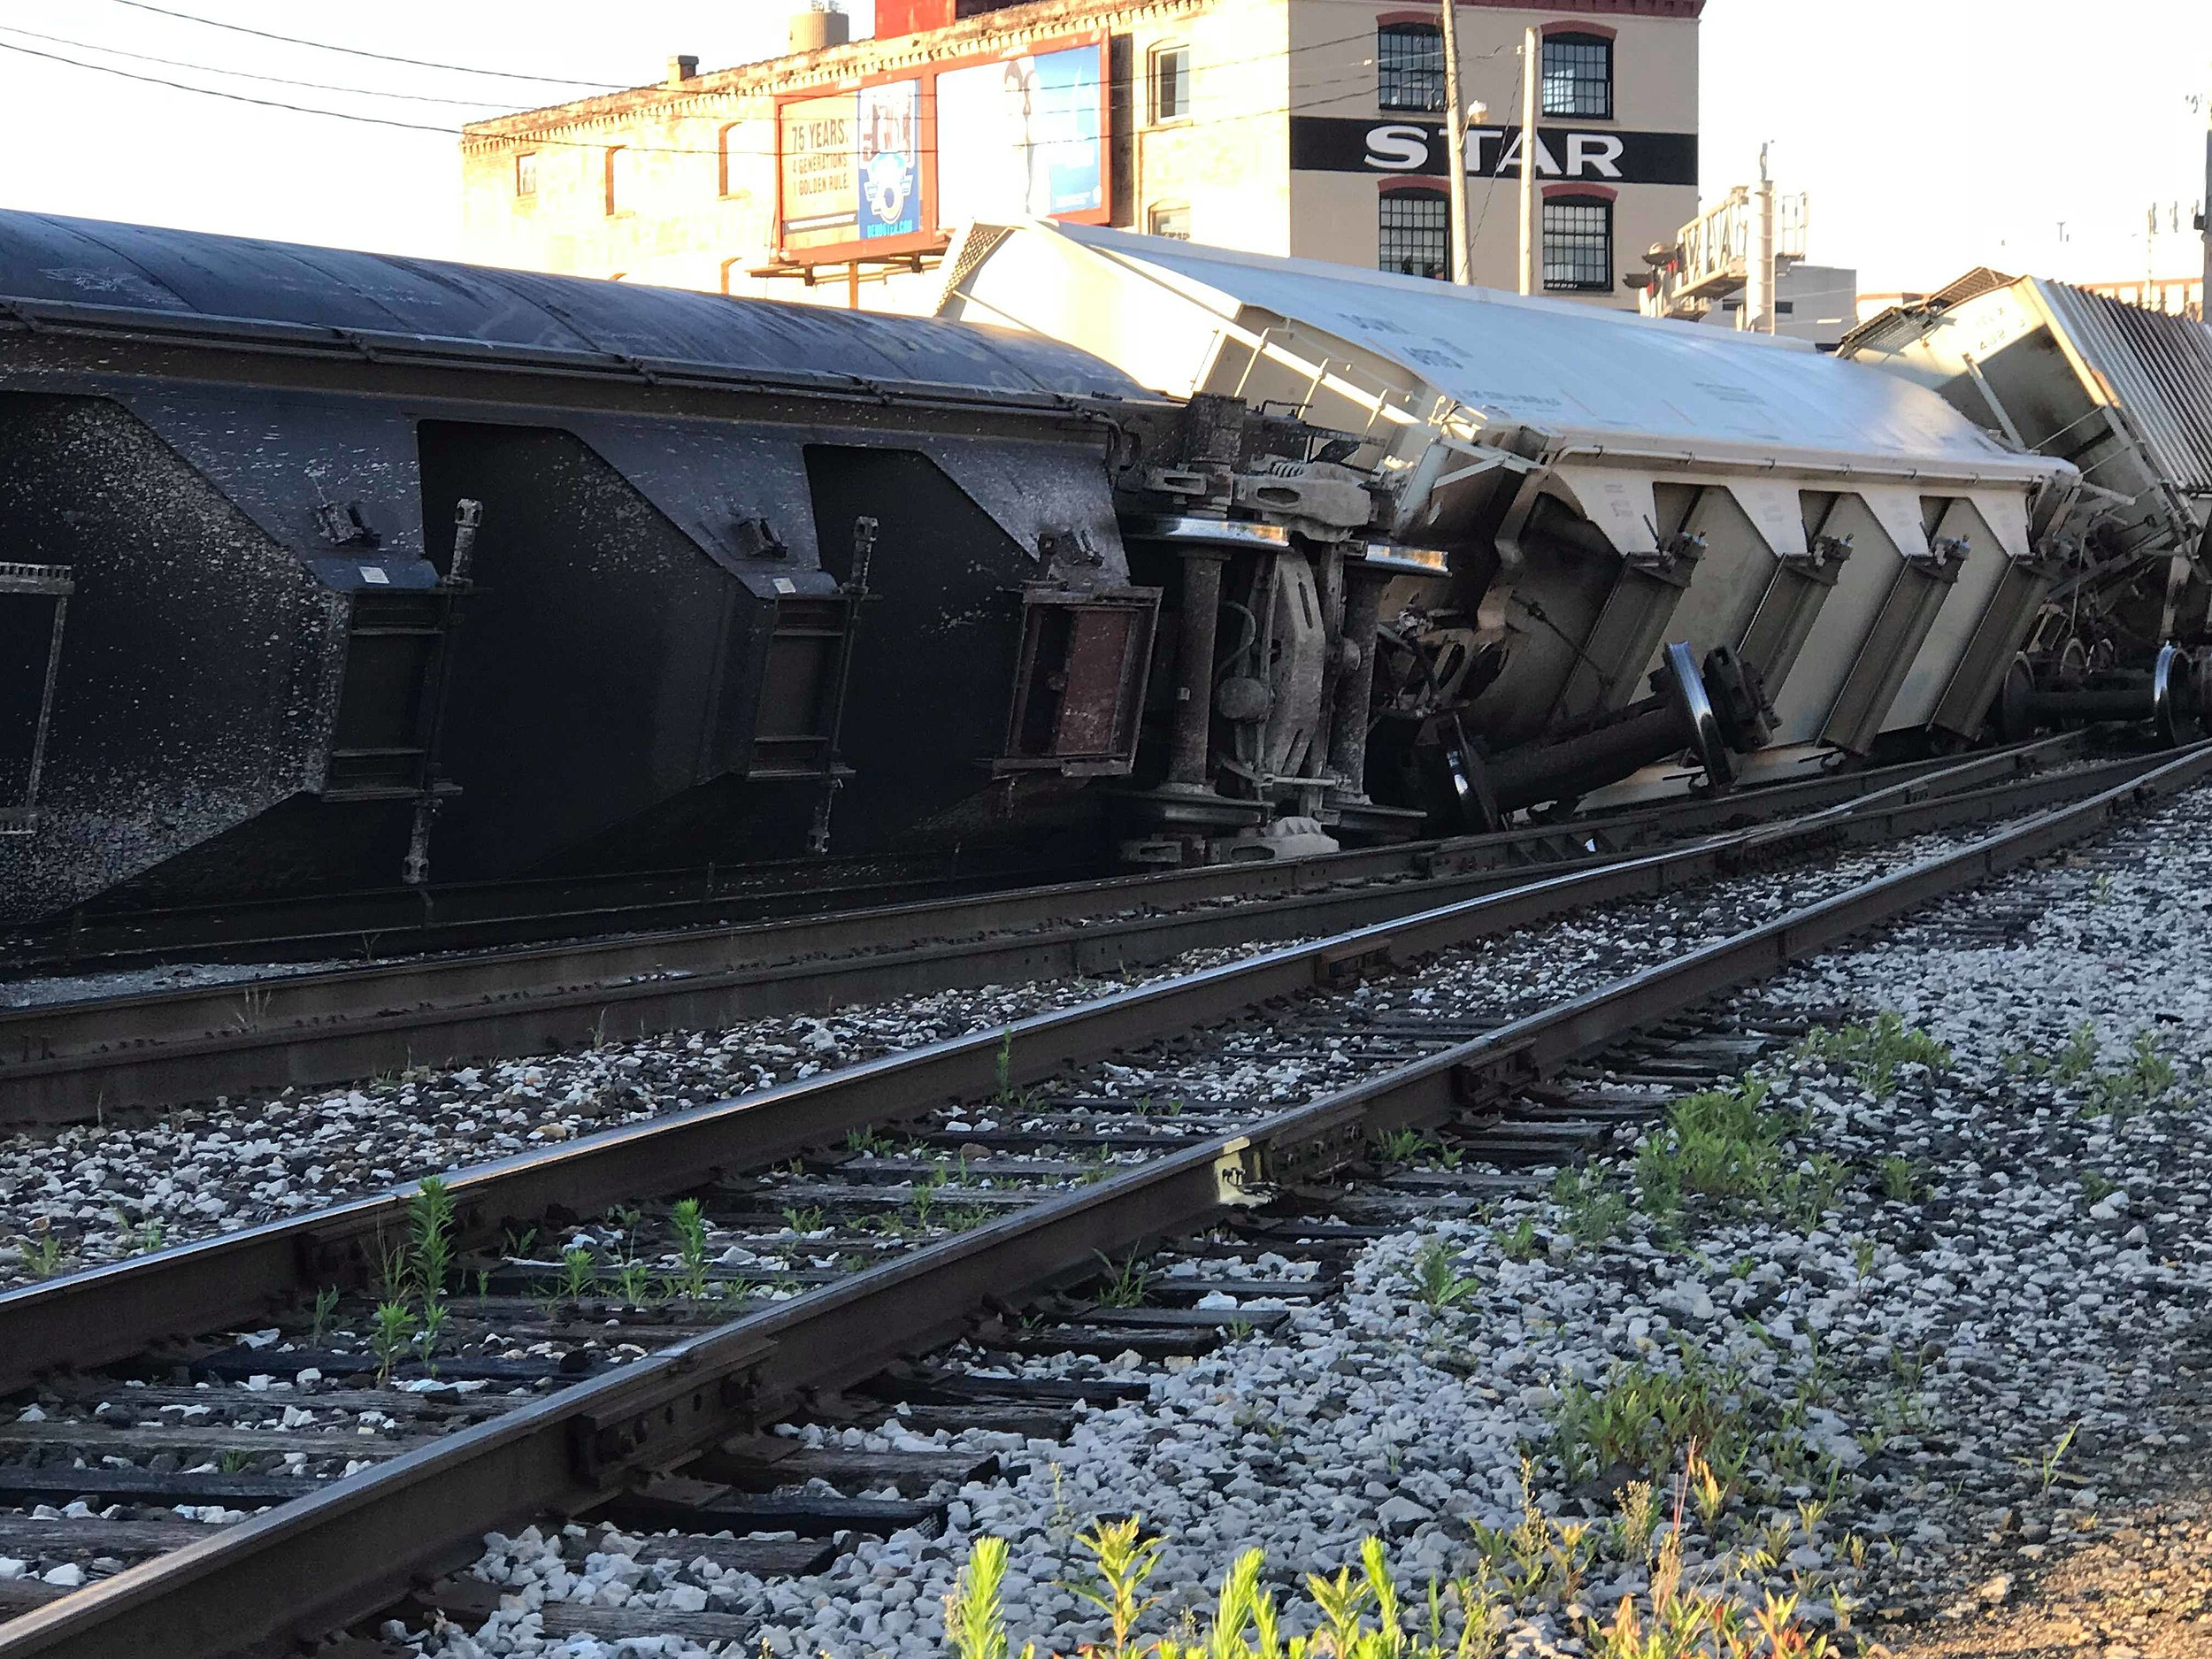 Video Aftermath of Horrific Train Accident in Comstock